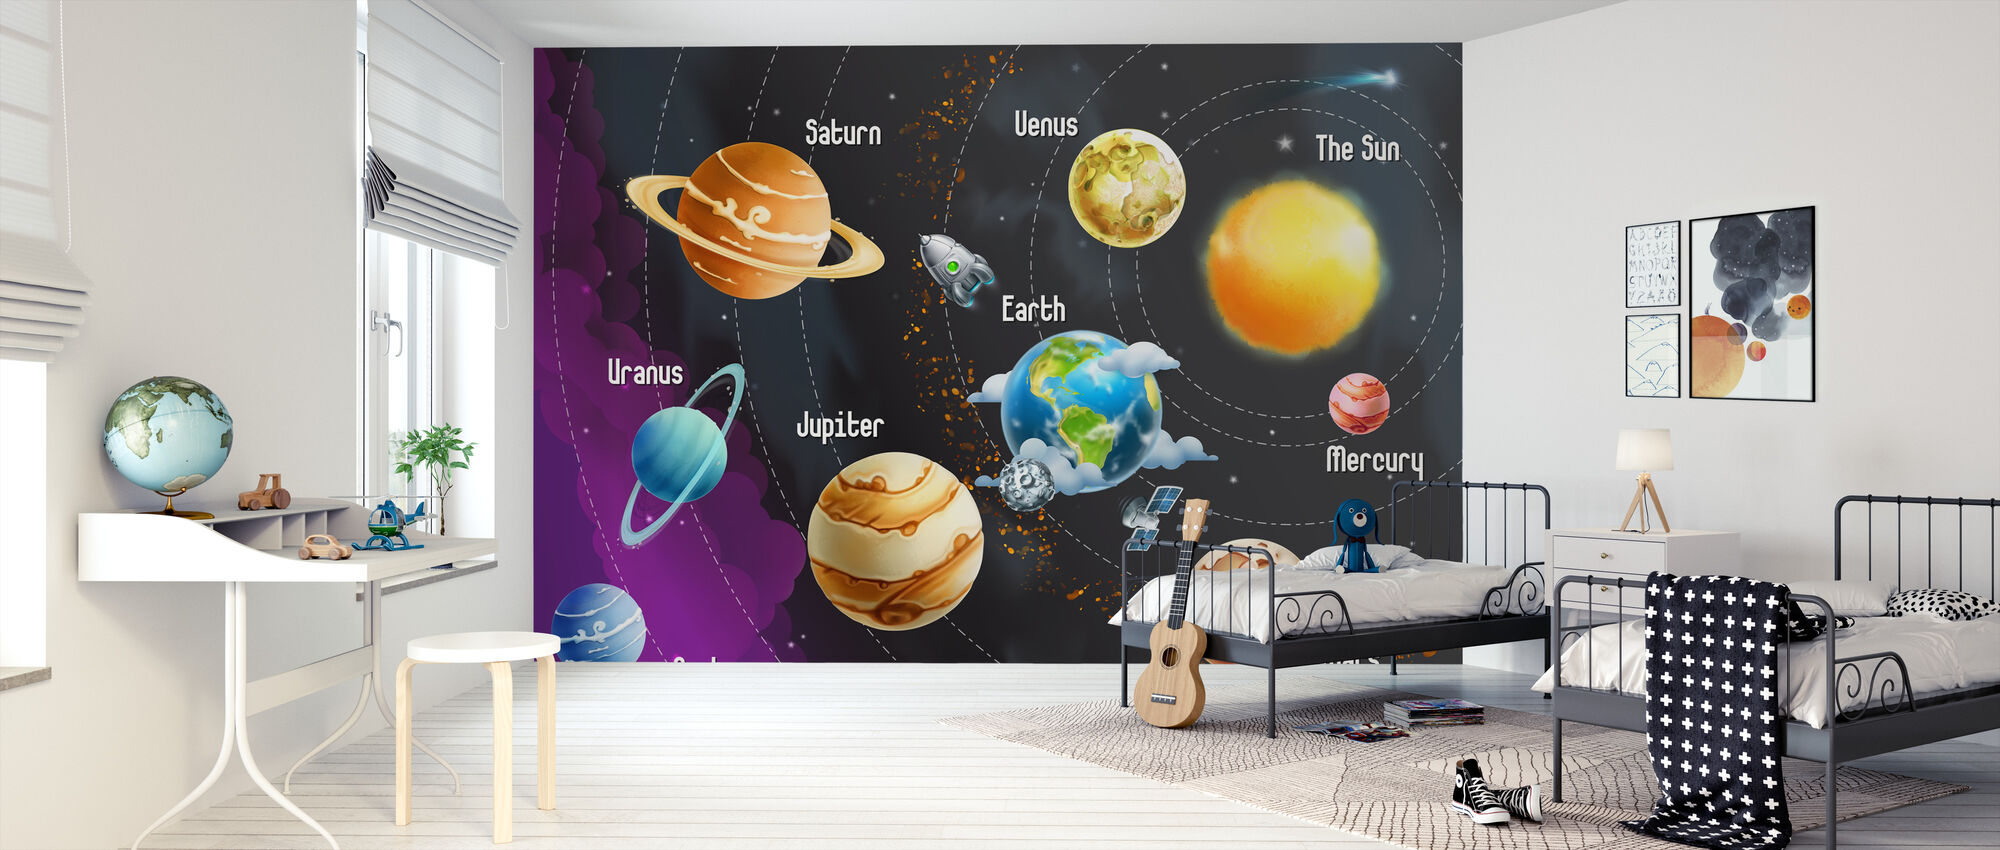 Solar System Planets - Wallpaper - Kids Room